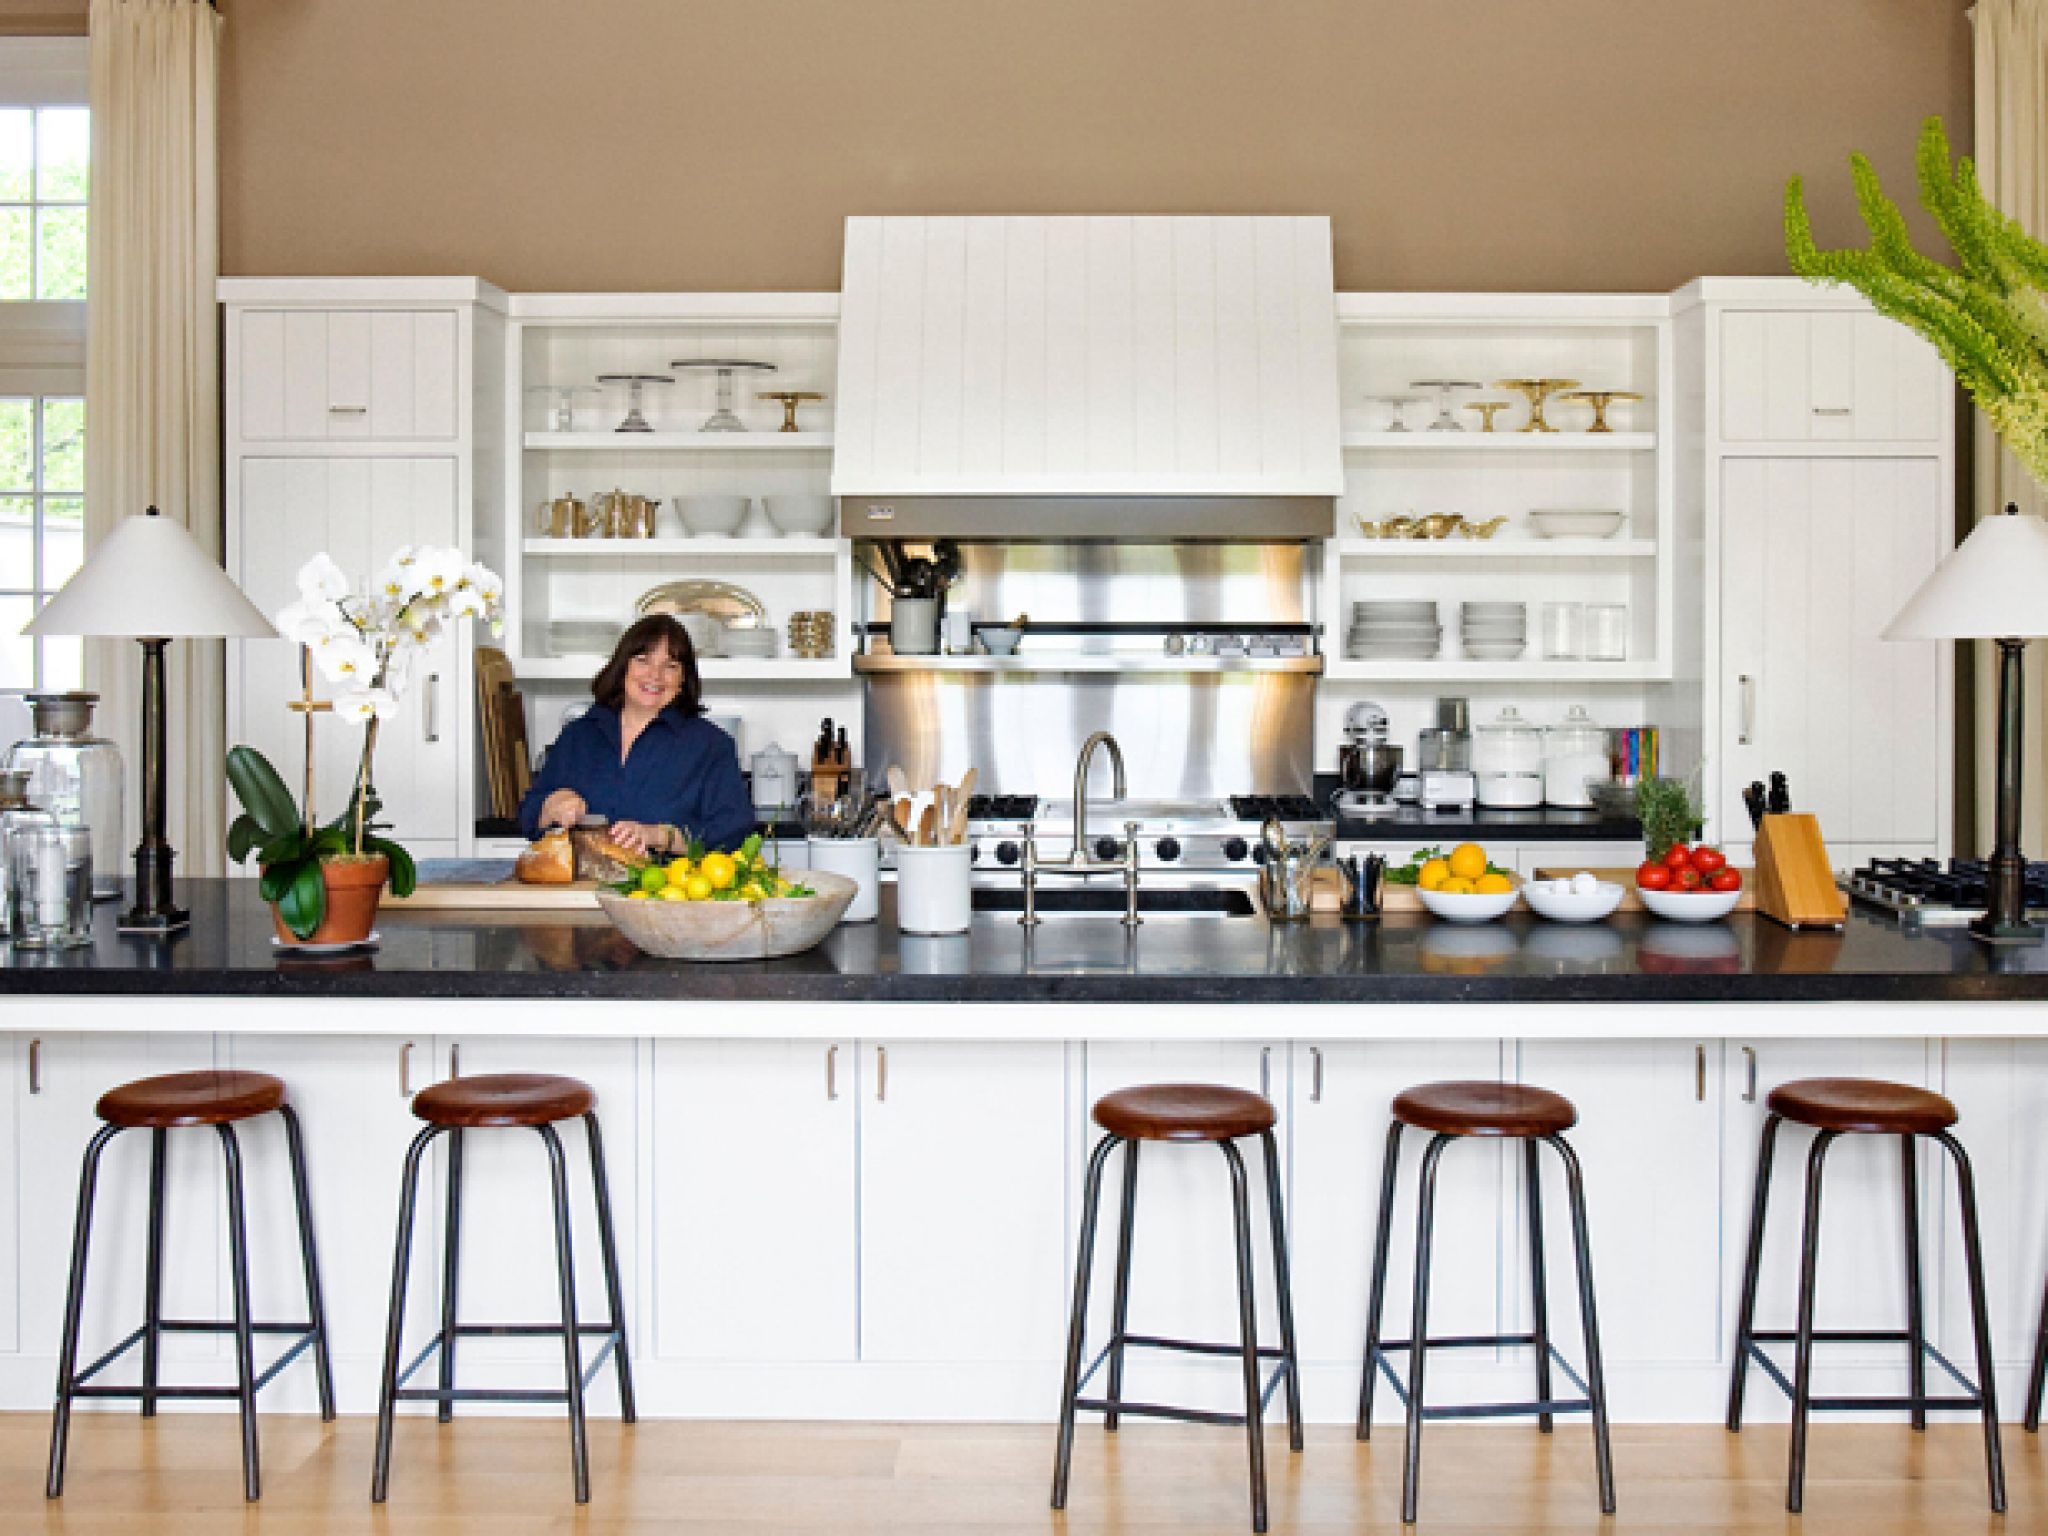 Star Kitchen: Ina Garten | Ina garten, Garten and Kitchens